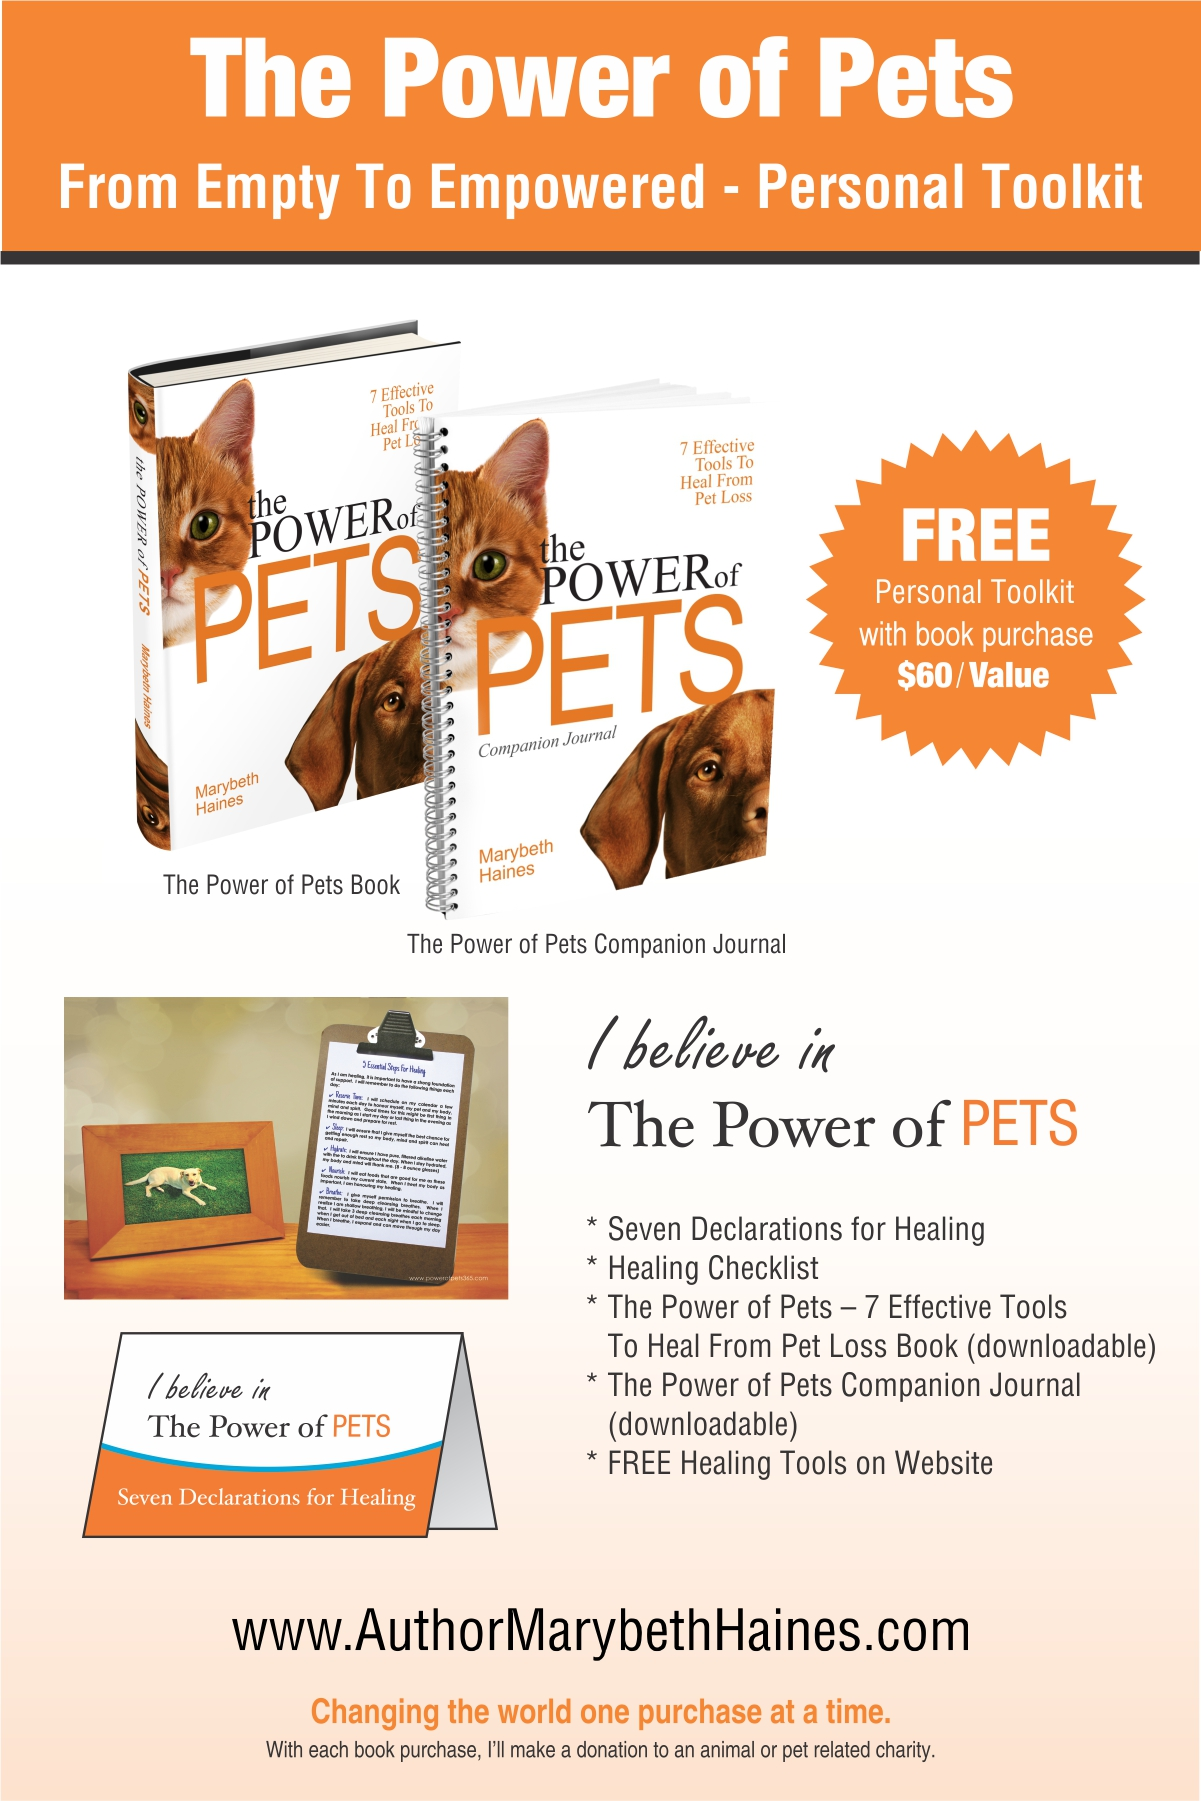 FETE_Power of Pets - PC Personal Toolkit